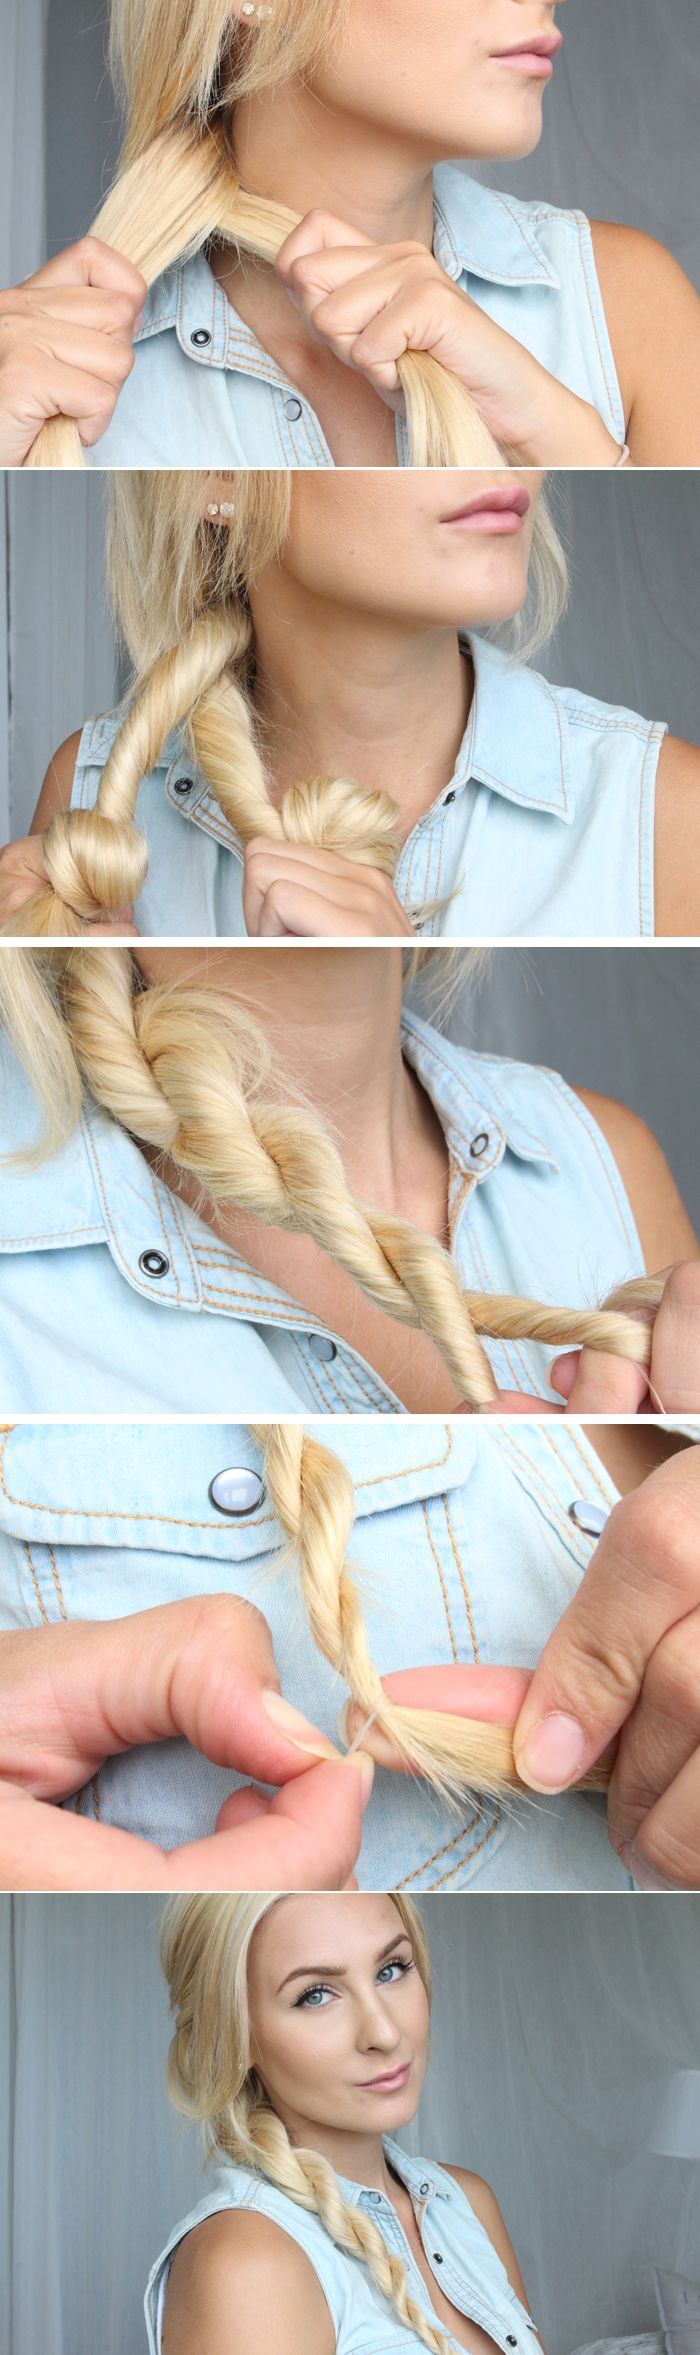 Rope twist side braid tutorial by helen torsgården on vecko revyn